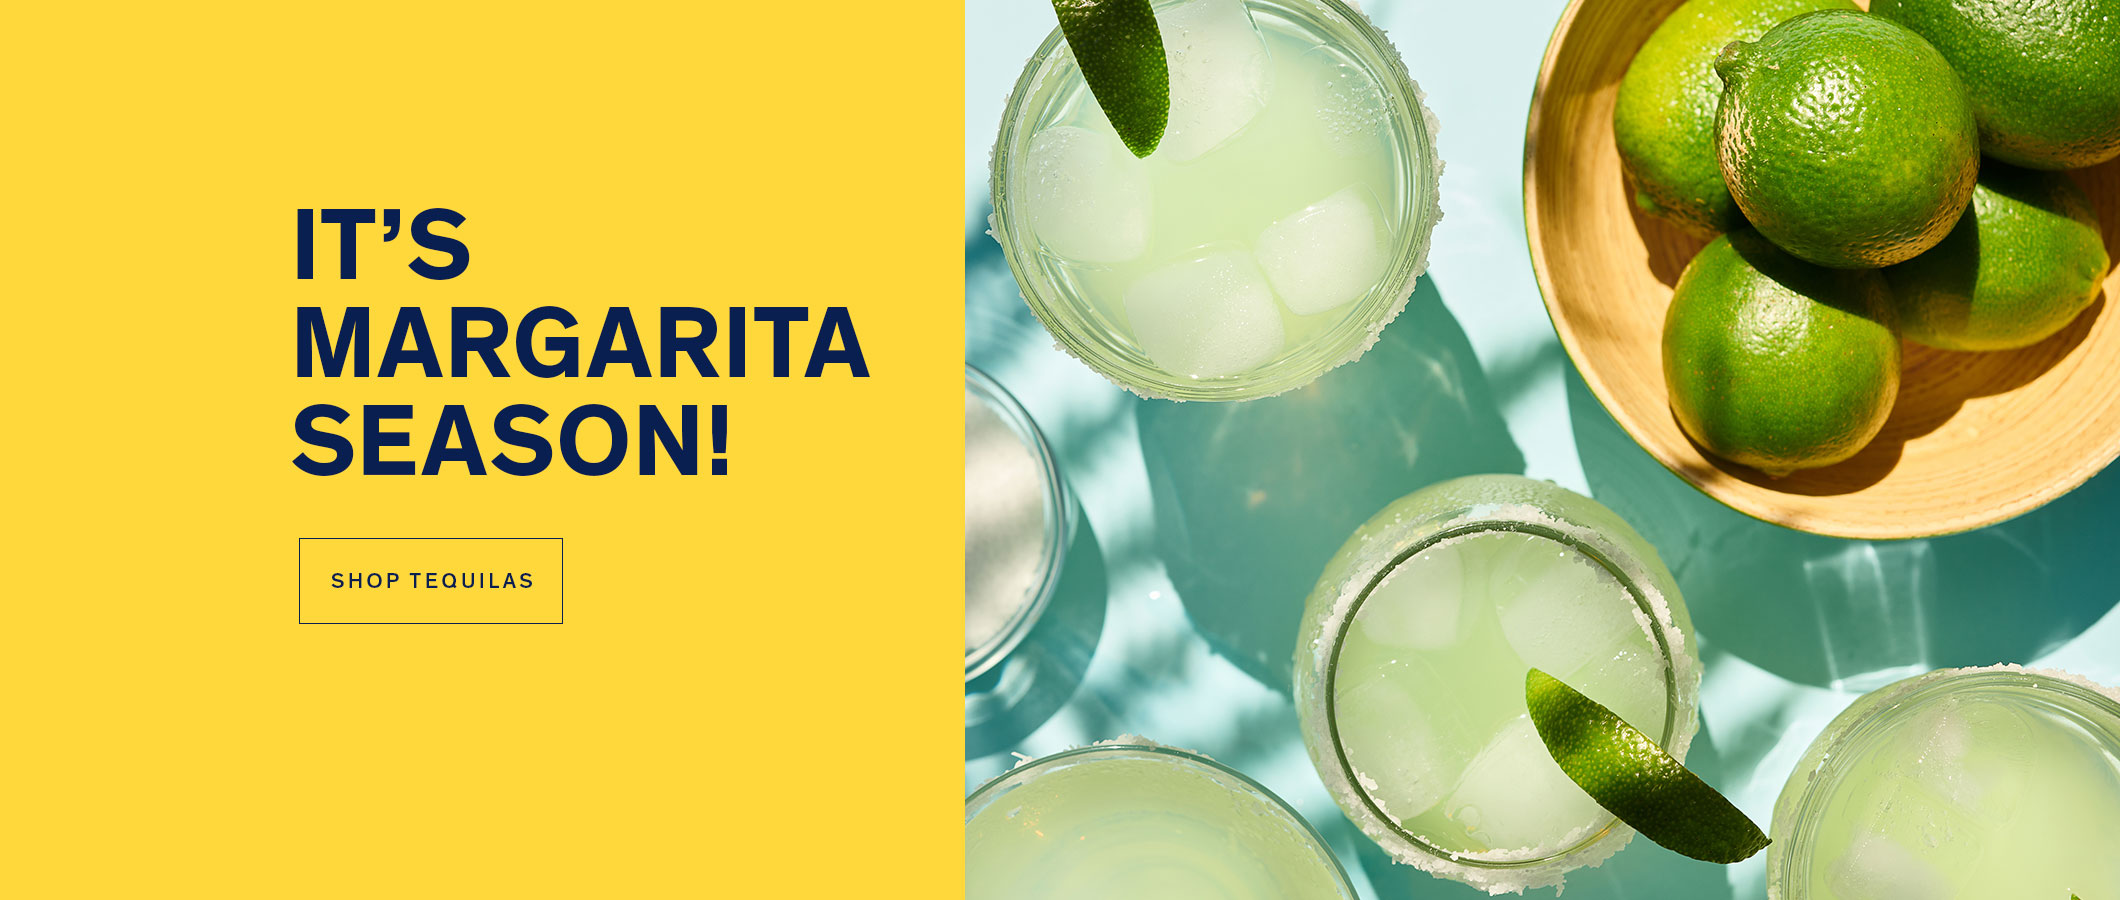 It's Margarita Season!